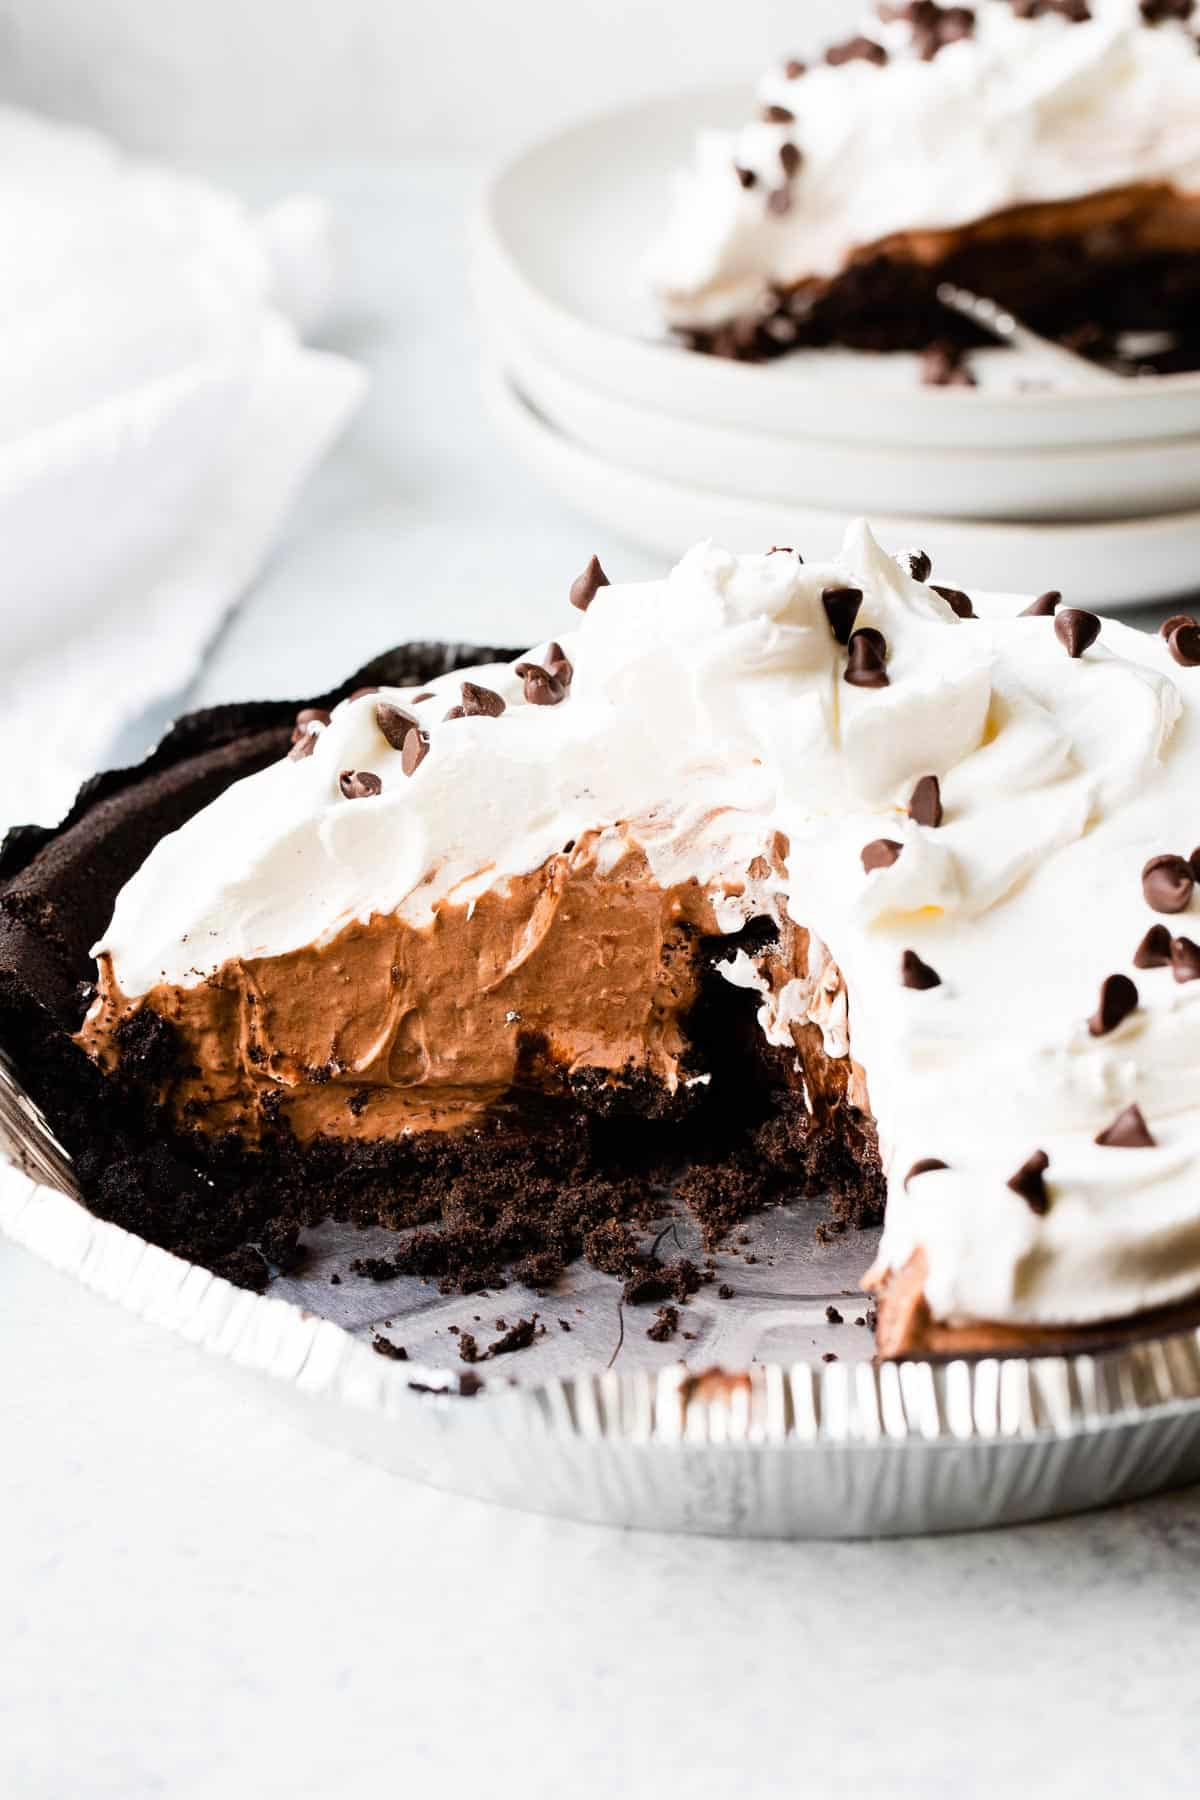 a chocolate pie topped with whipped cream with a slice taken out and set in background